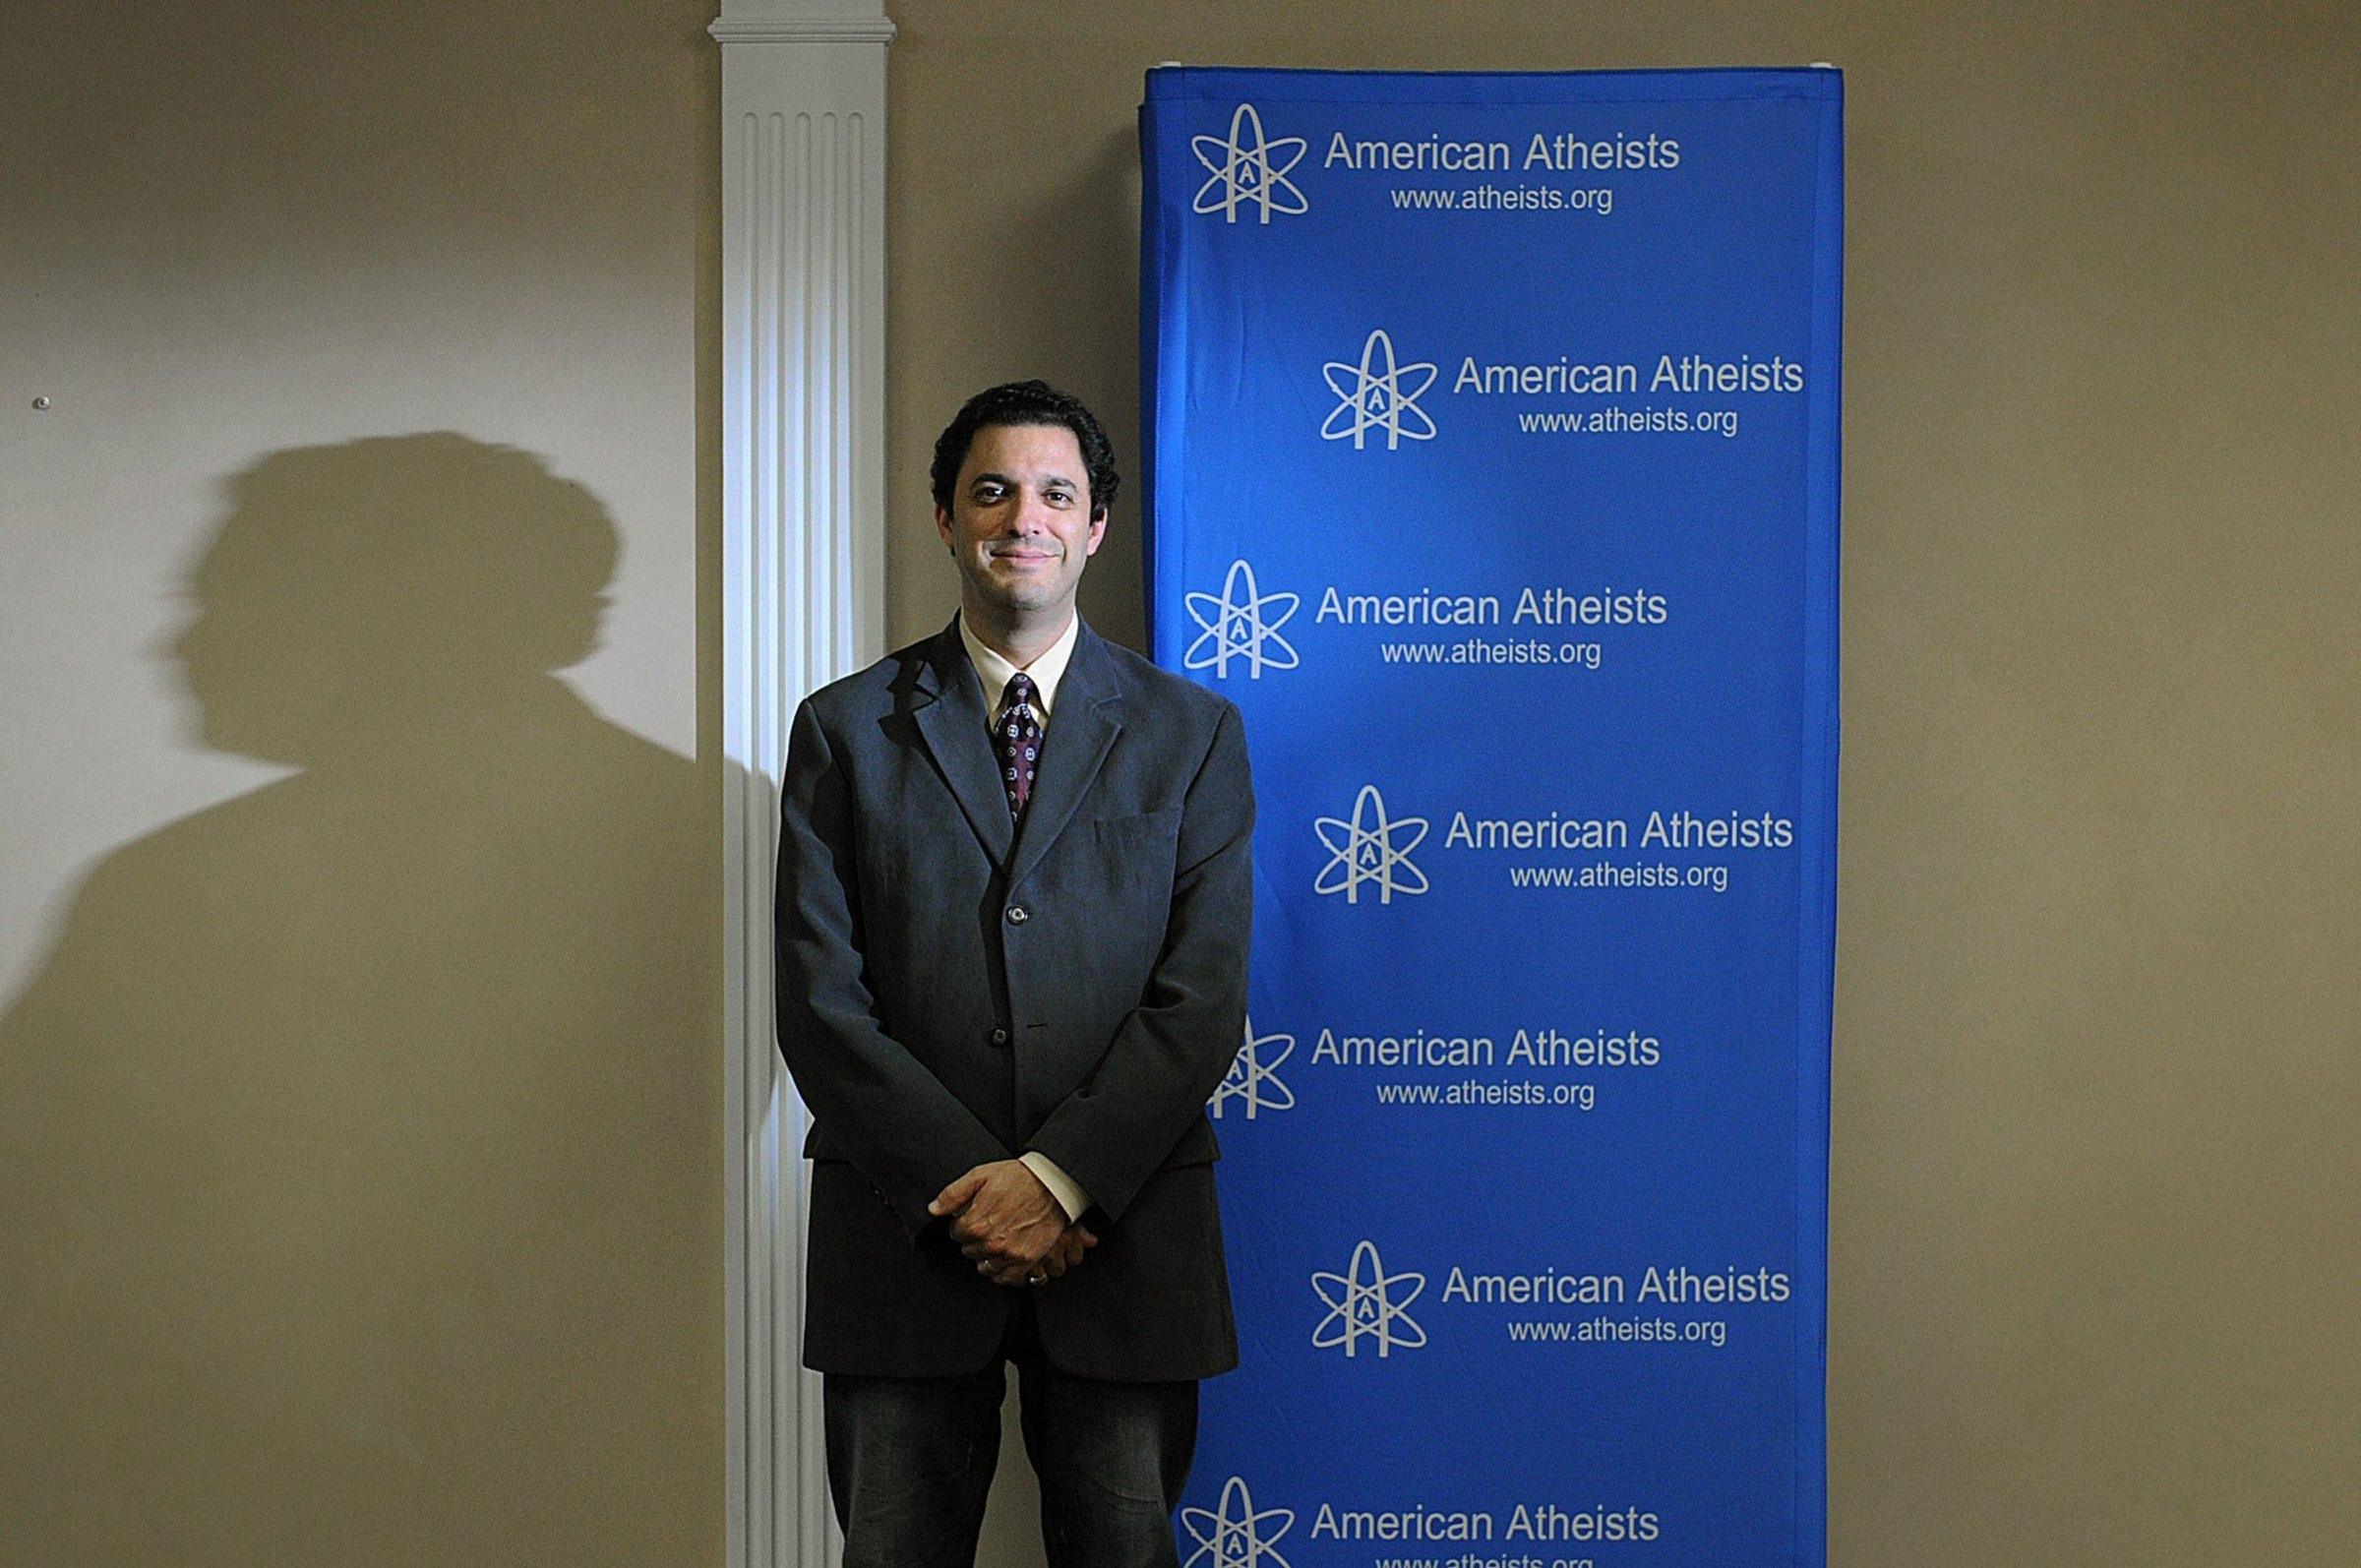 """David Silverman, the president of the American Atheists organization, is shown here before the taping of the group's weekly television show called """"Atheists Viewpoint."""""""